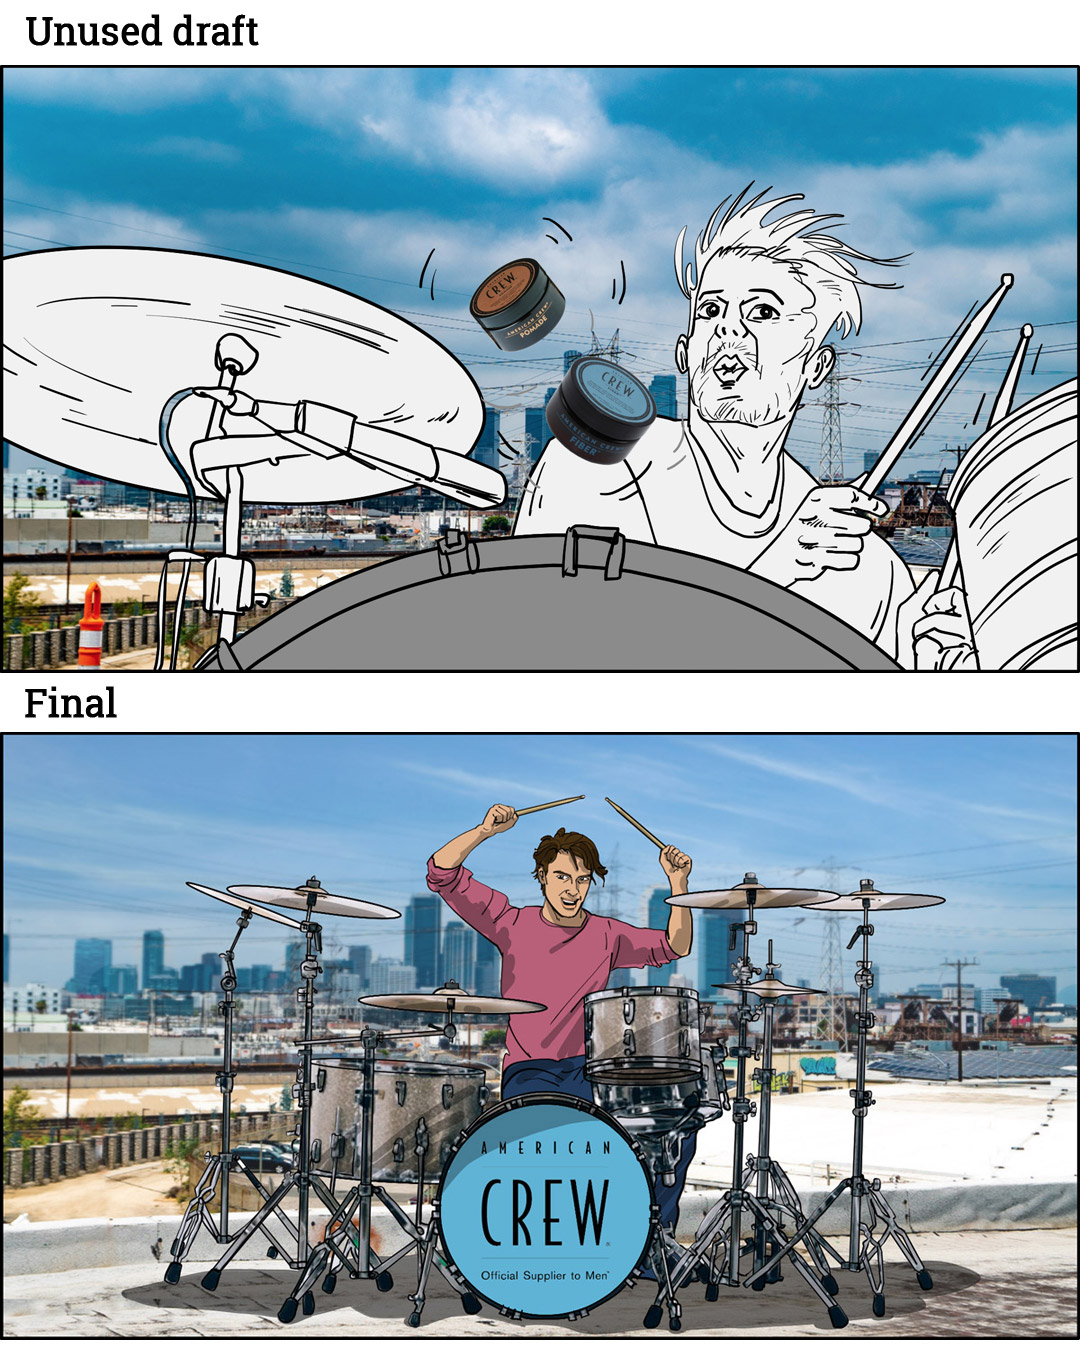 ACP 23 drummer storyboard, draft versus final